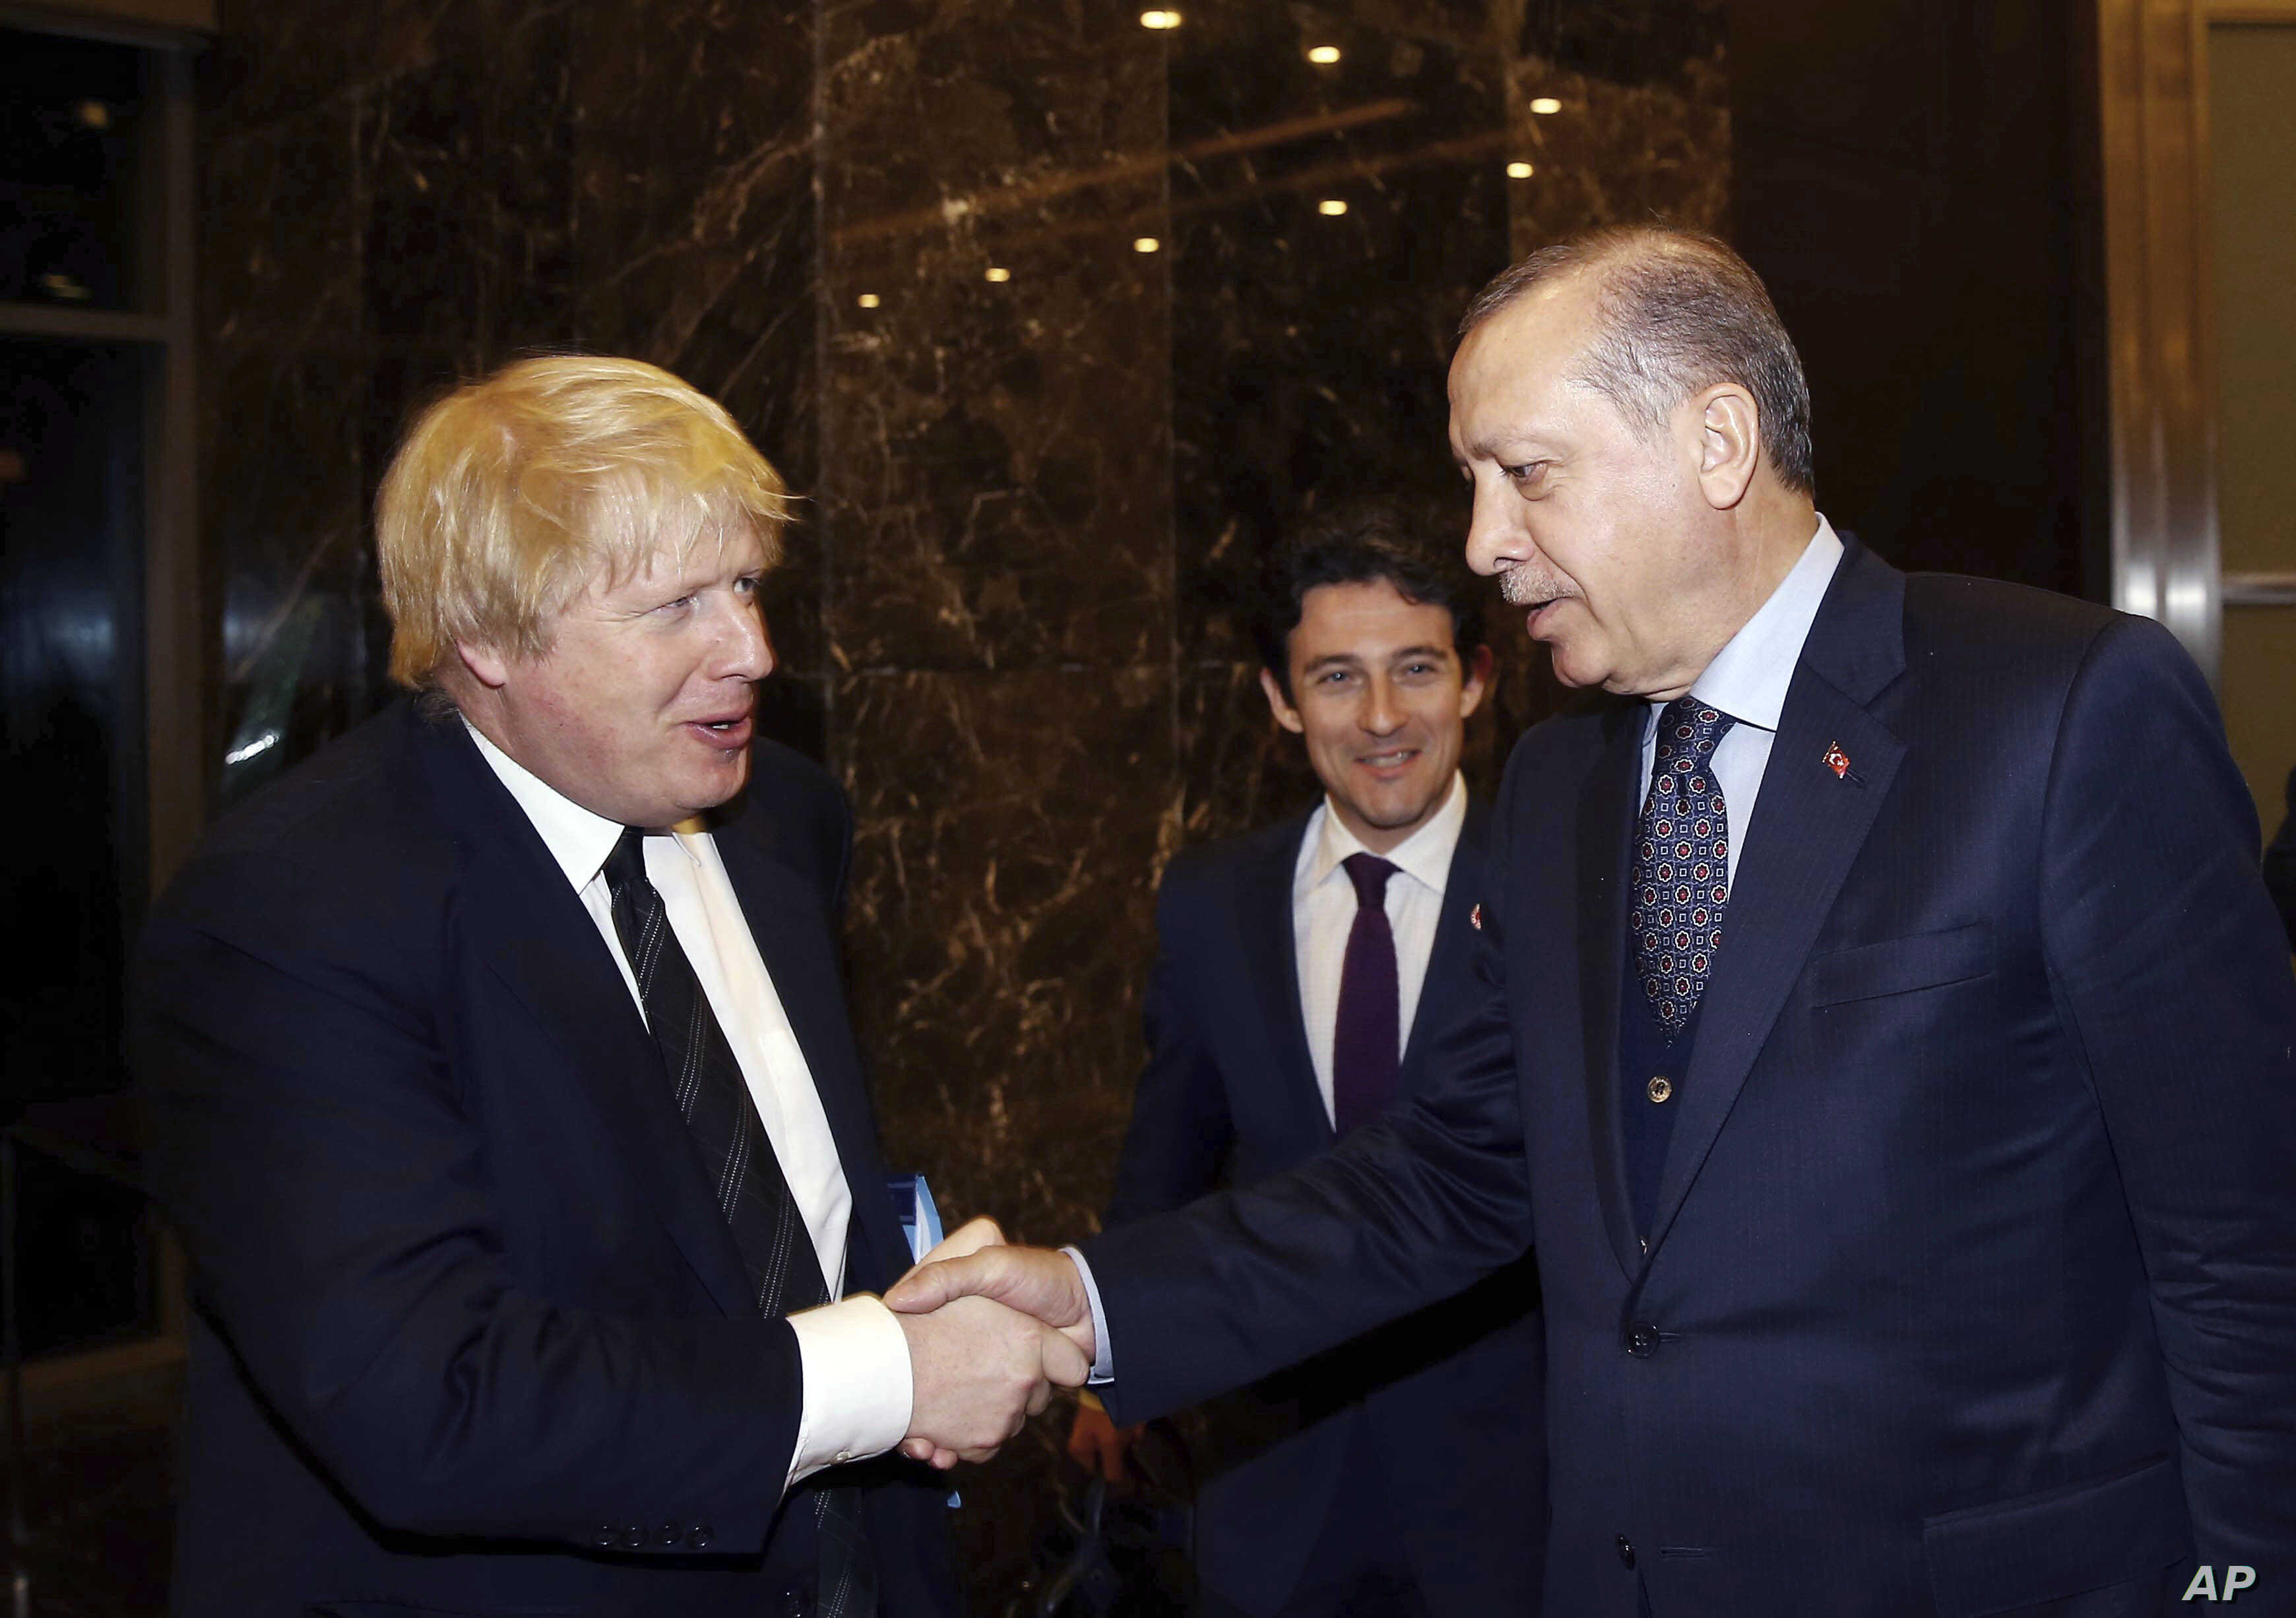 British Foreign Secretary Boris Johnson, left, and Turkish President Recep Tayyip Erdogan shake hands before a meeting in Antalya, Turkey, March 24, 2017.  U.S. Secretary of State Rex Tillerson will visit Turkey before going to Brussels in early Apri...